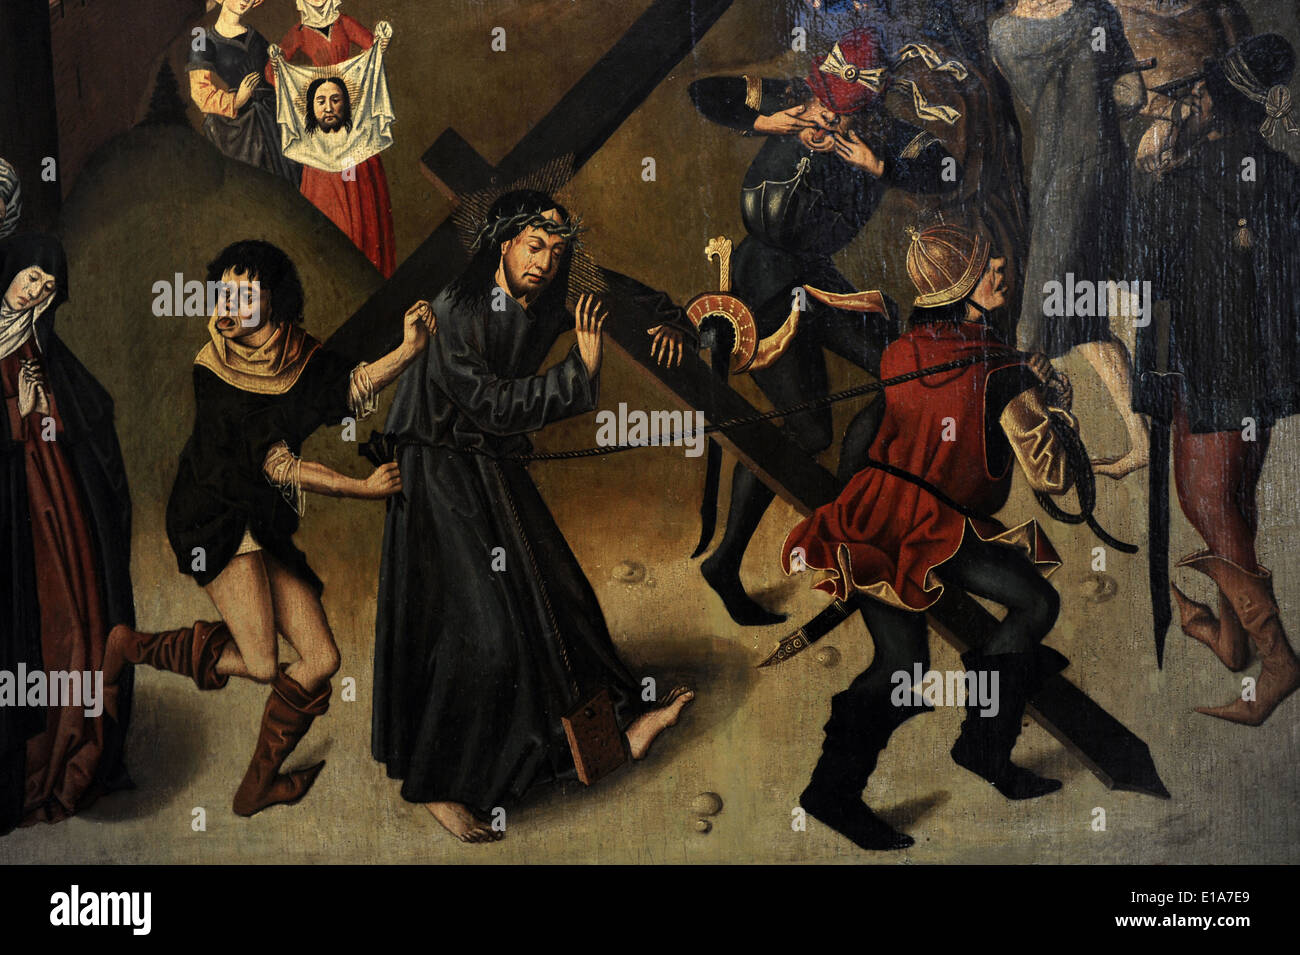 Scenes from the Passion of Christ, ca. 1470. Anonymous. Haarlem?. Detail of Christ carrying the cross. - Stock Image